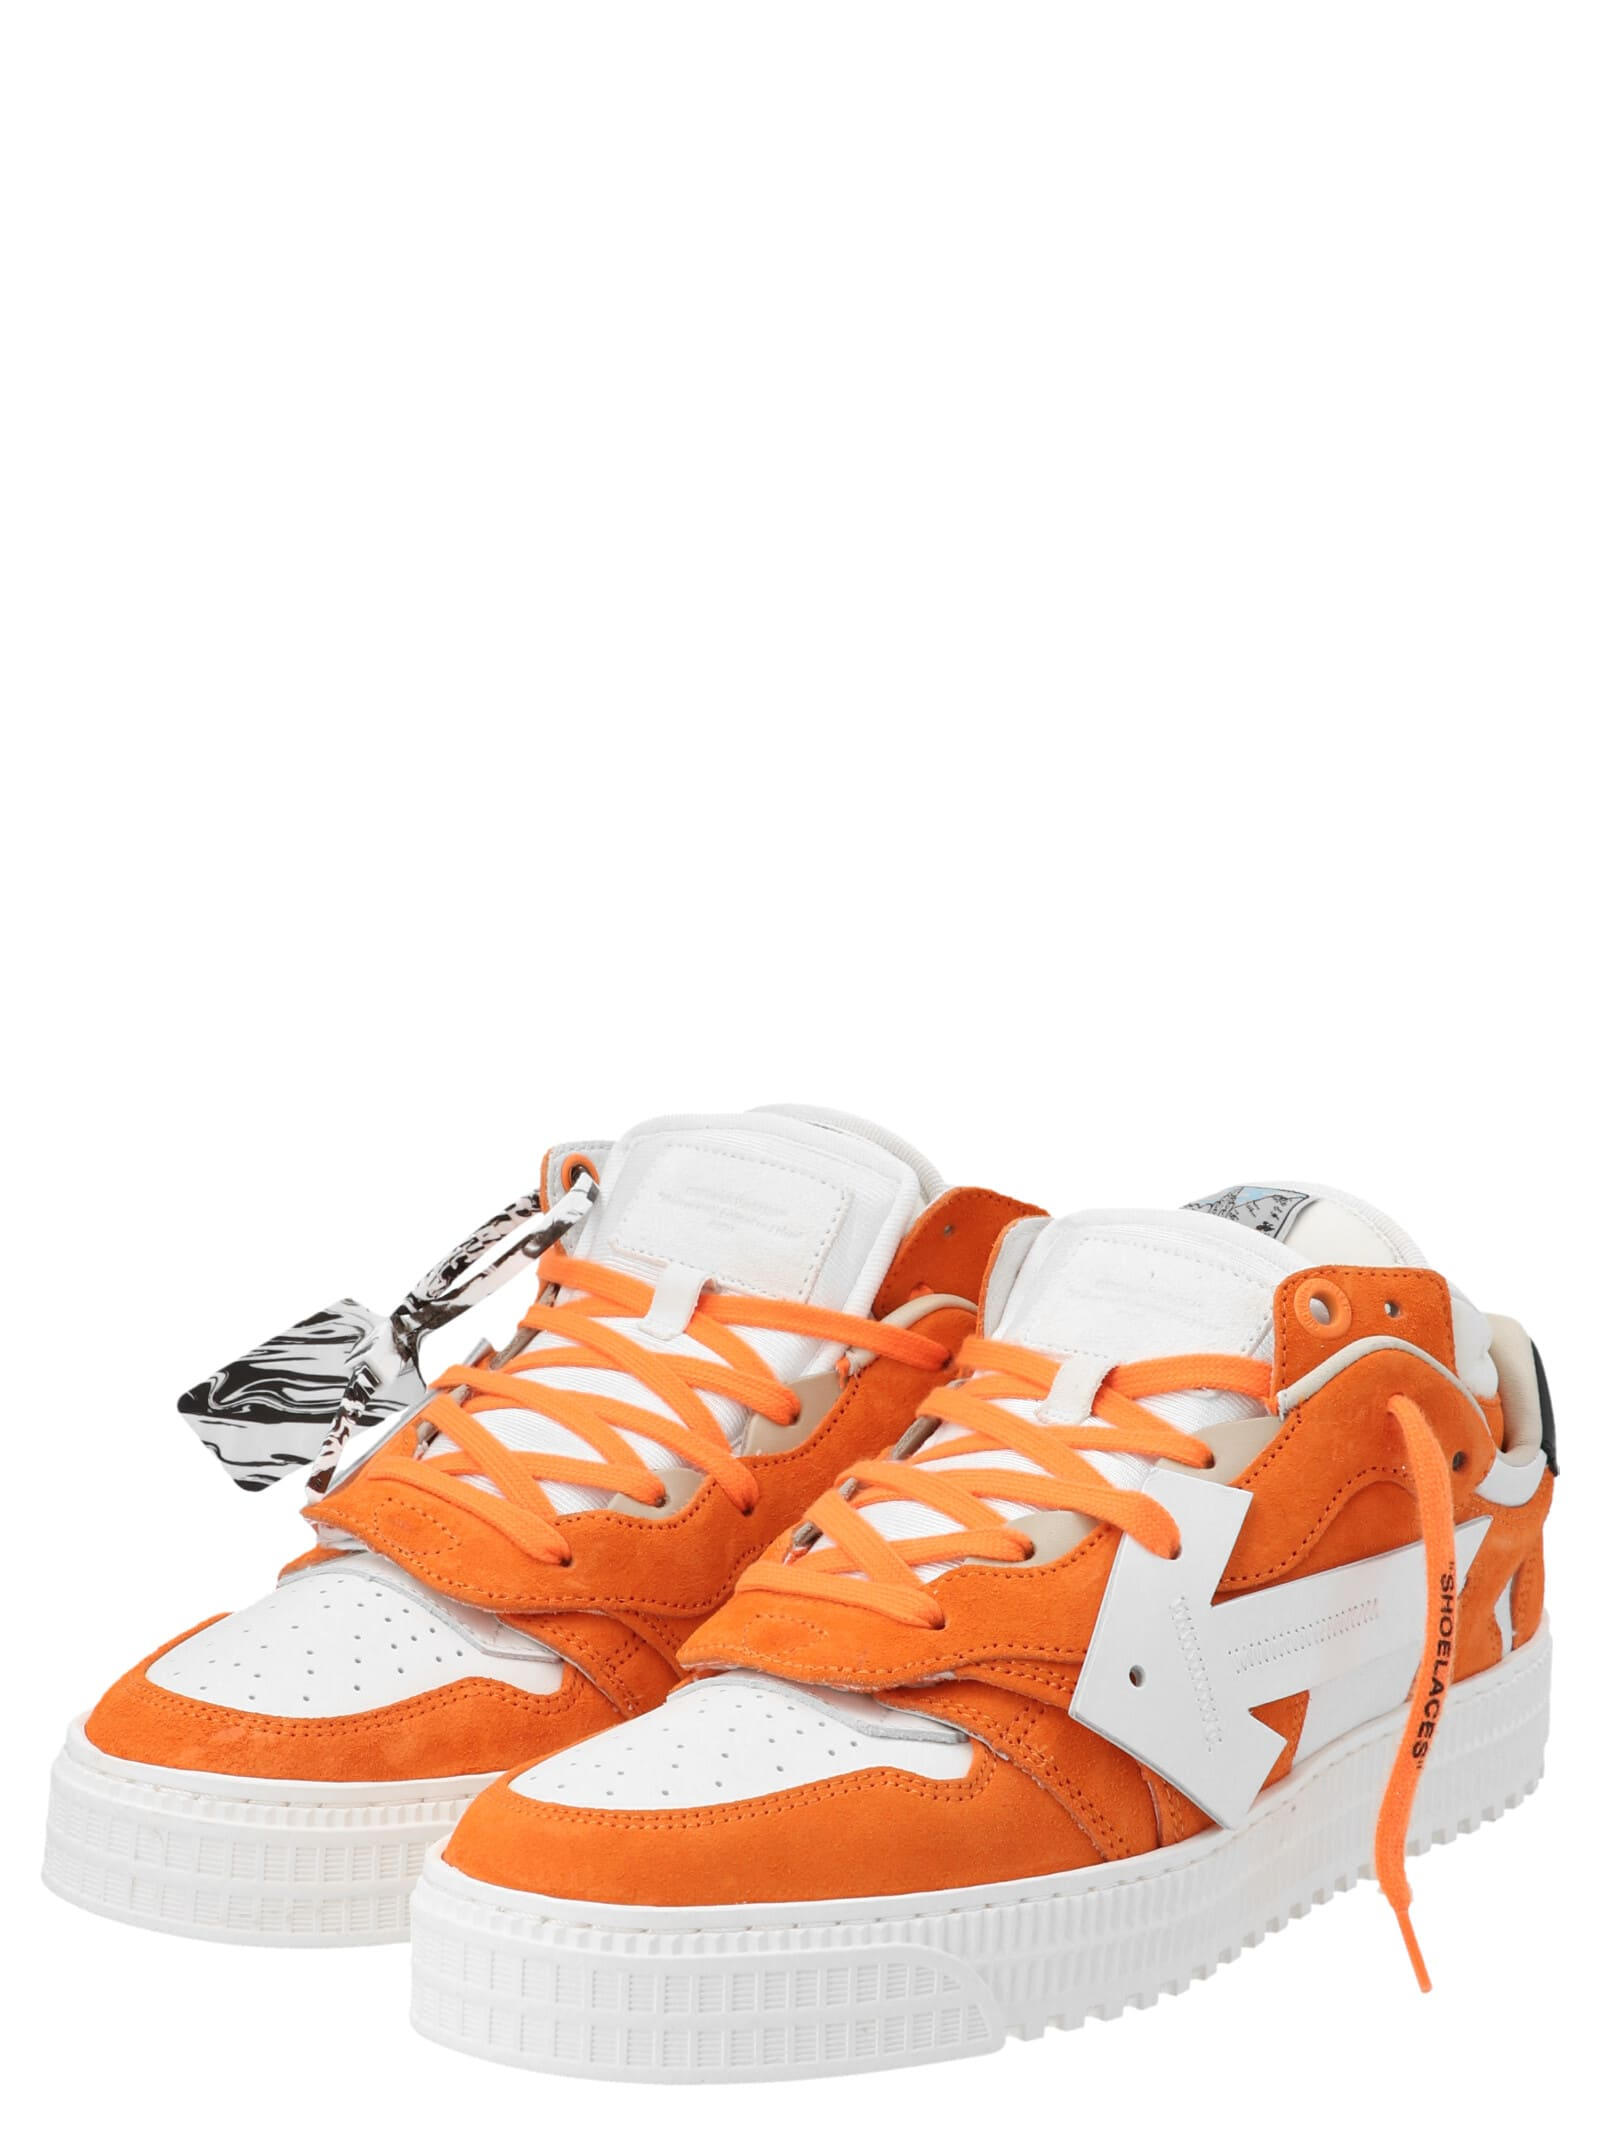 Off-white floating Arrow Shoes